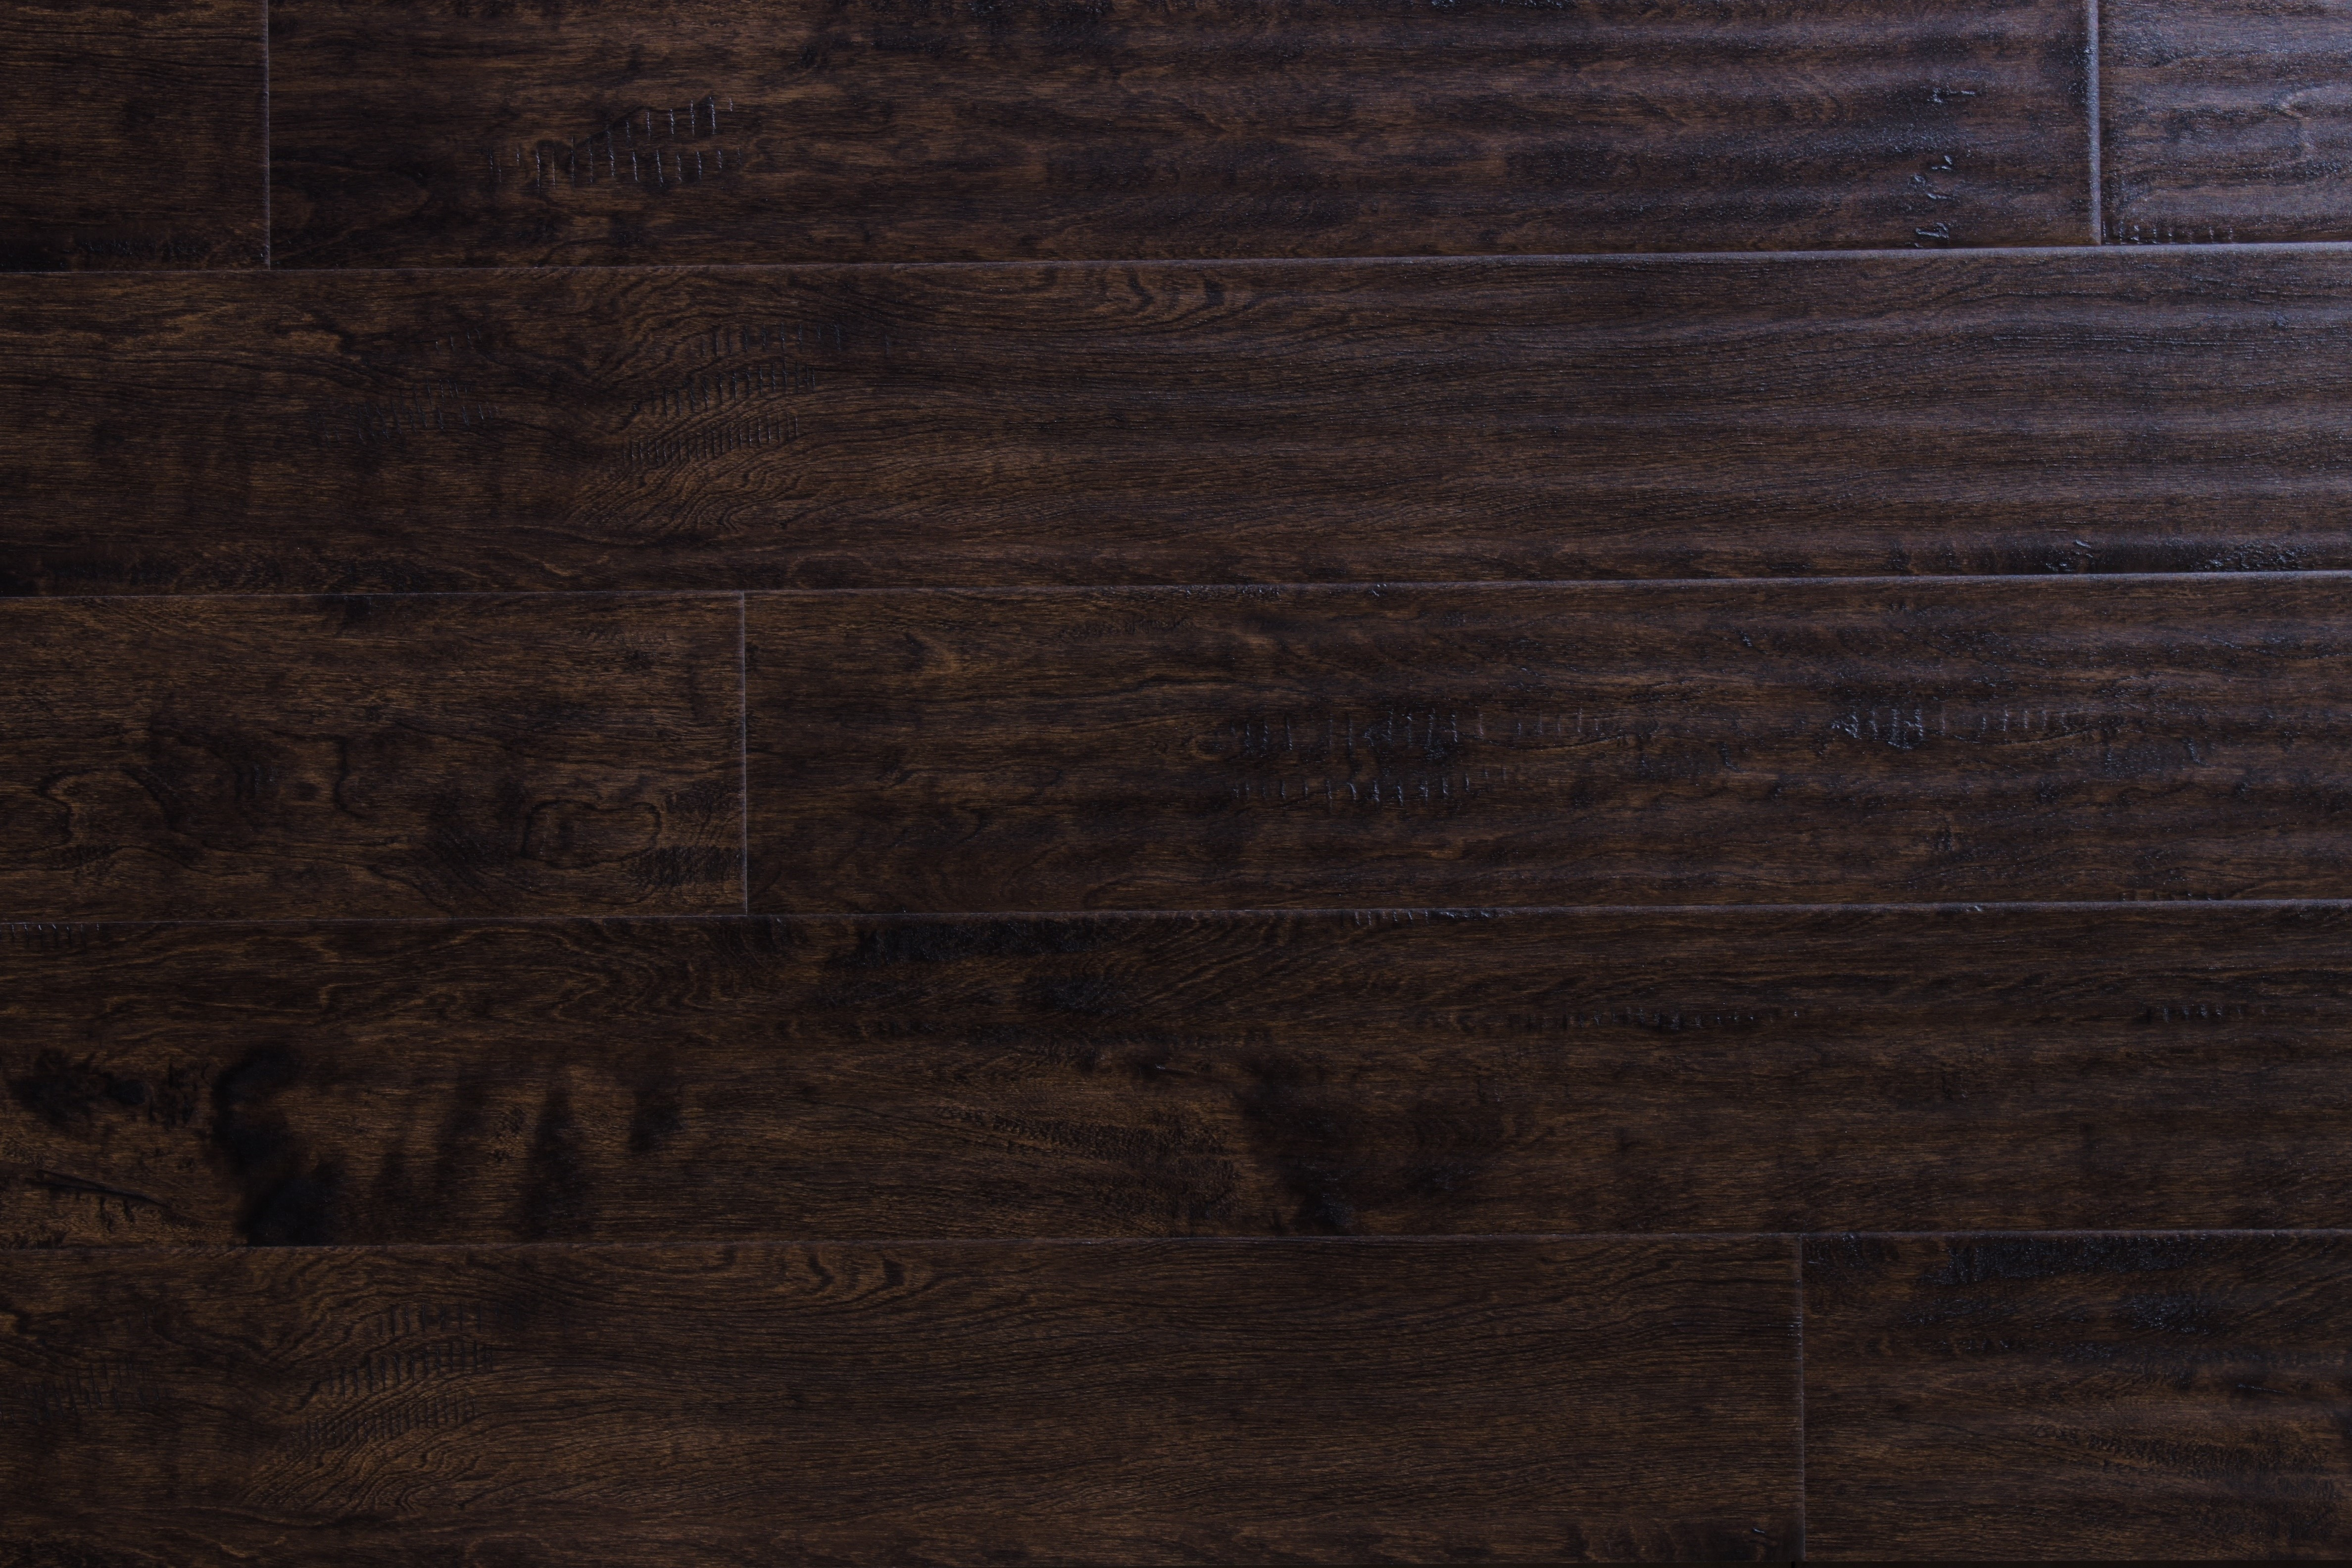 wholesale hardwood flooring chicago of wood flooring free samples available at builddirecta pertaining to tailor multi gb 5874277bb8d3c